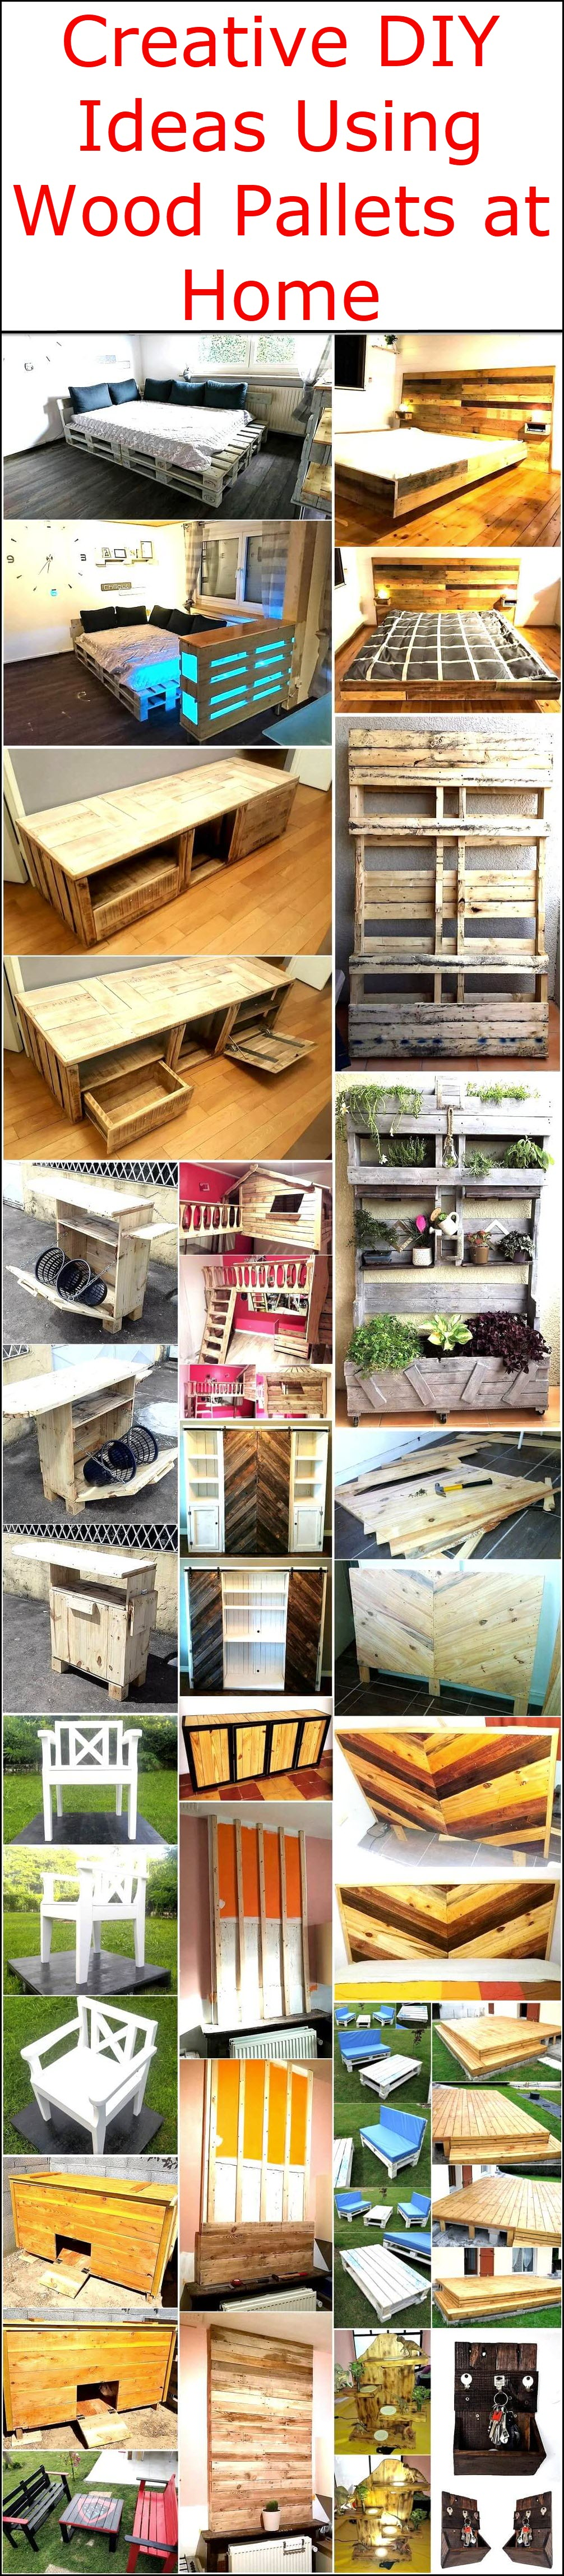 Creative DIY Ideas Using Wood Pallets at Home 1